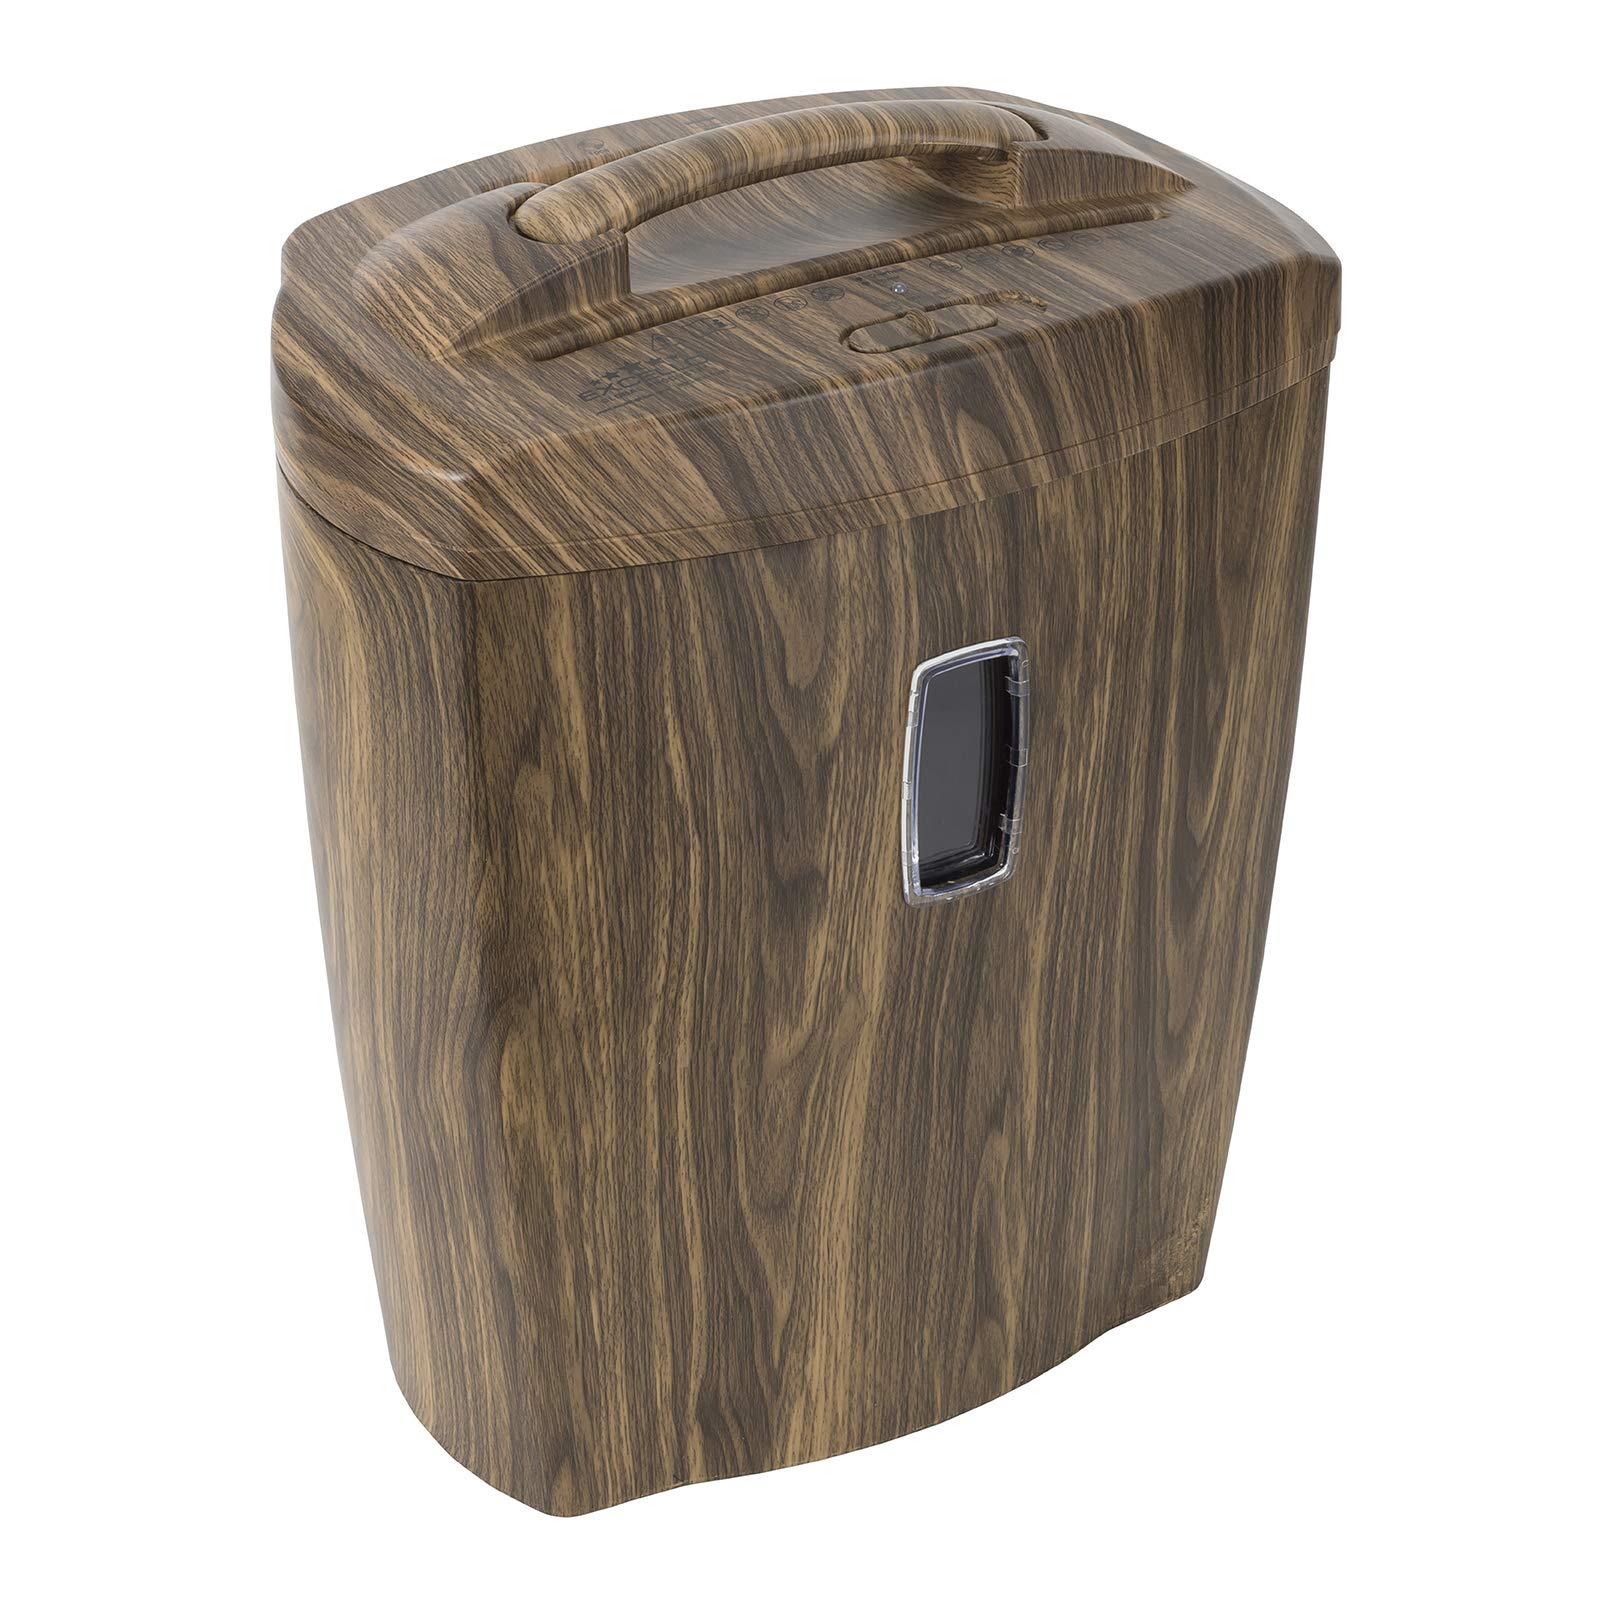 Shredder for Home or Office with Fashionable Wood Appearance: 10 Sheet, Cross Cut, 5.5 Gallon Waste Bucket, 2 Minute Run Time, Shreds Credit Cards, Clips and Staples, 5.5 Gallon Waste Bucket by Excello Global Products